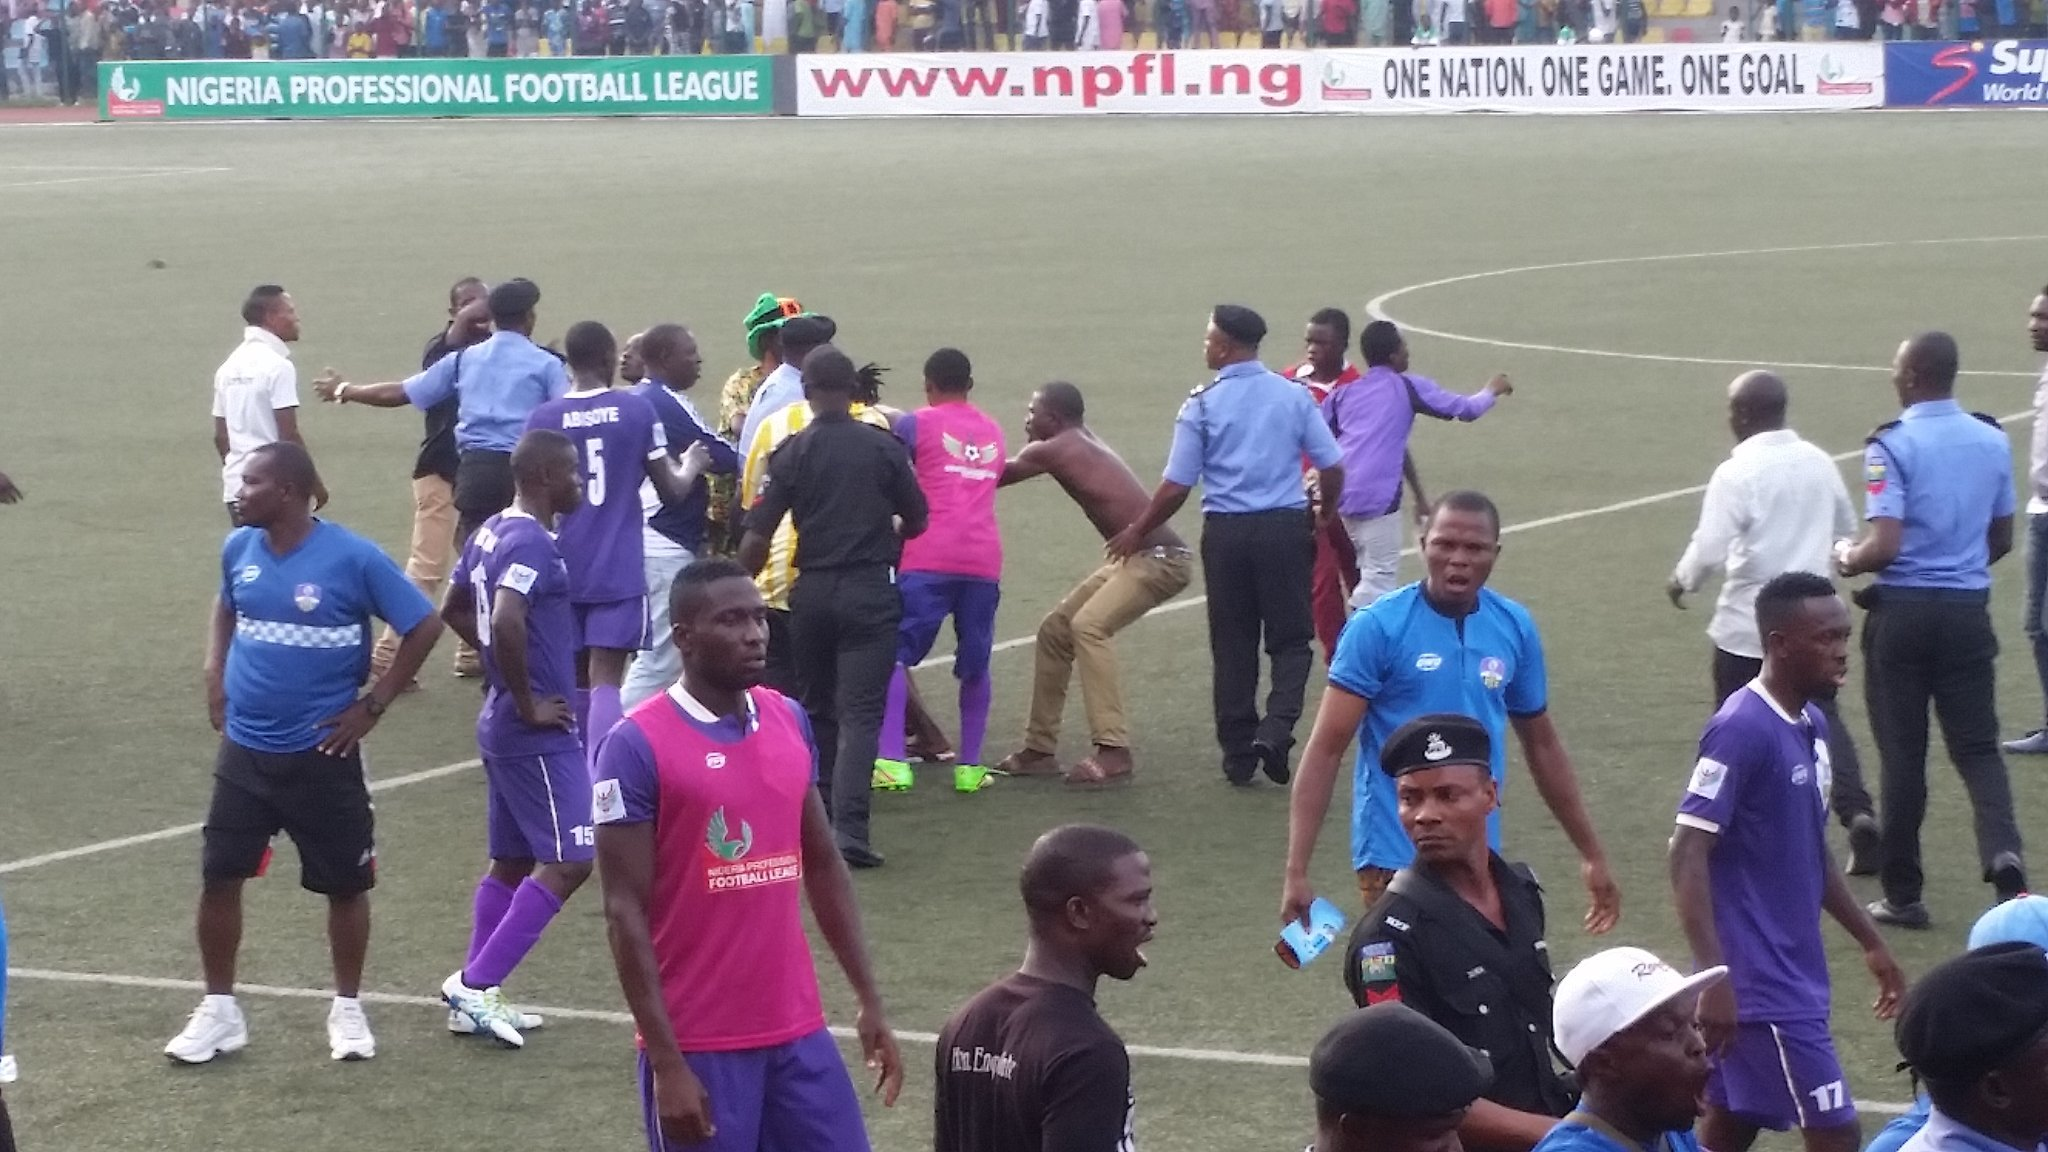 MFM Fined N2m, To Play Behind Closed Doors For Crowd Violence